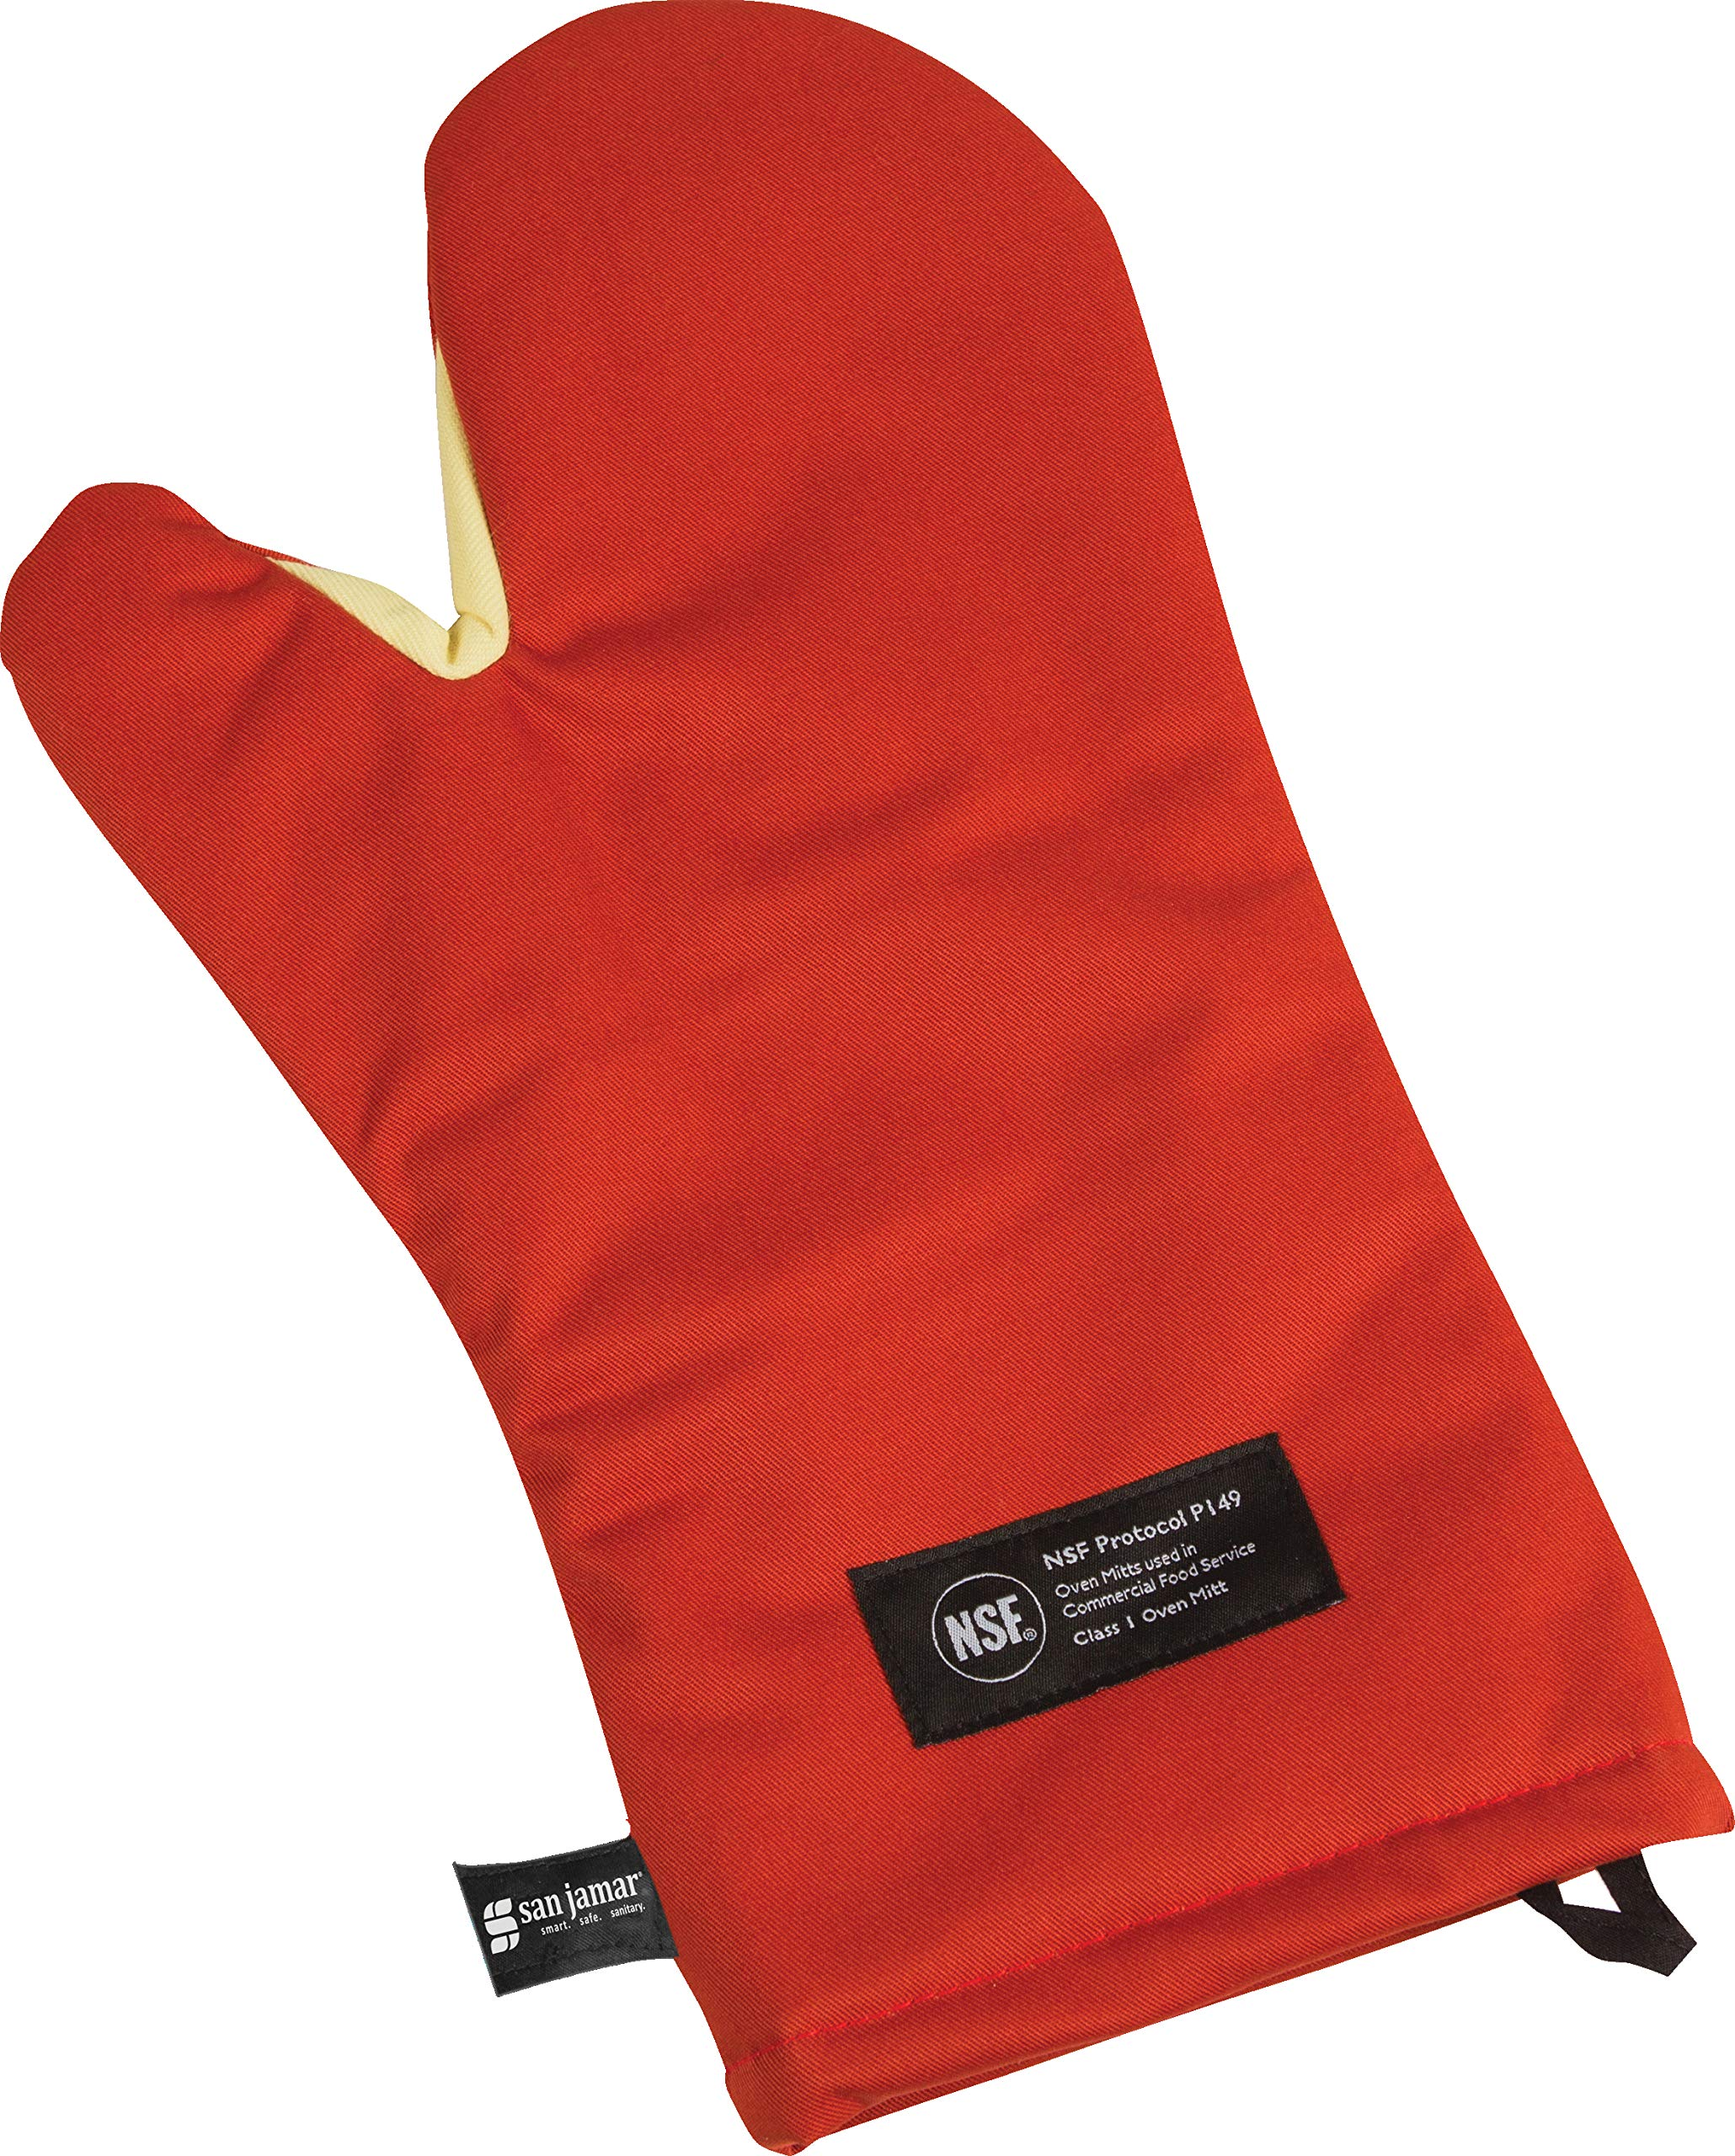 San Jamar CTC15 Cool Touch Conventional Oven Mitt Heat Protection up to 500° F, 15'' Length, Red